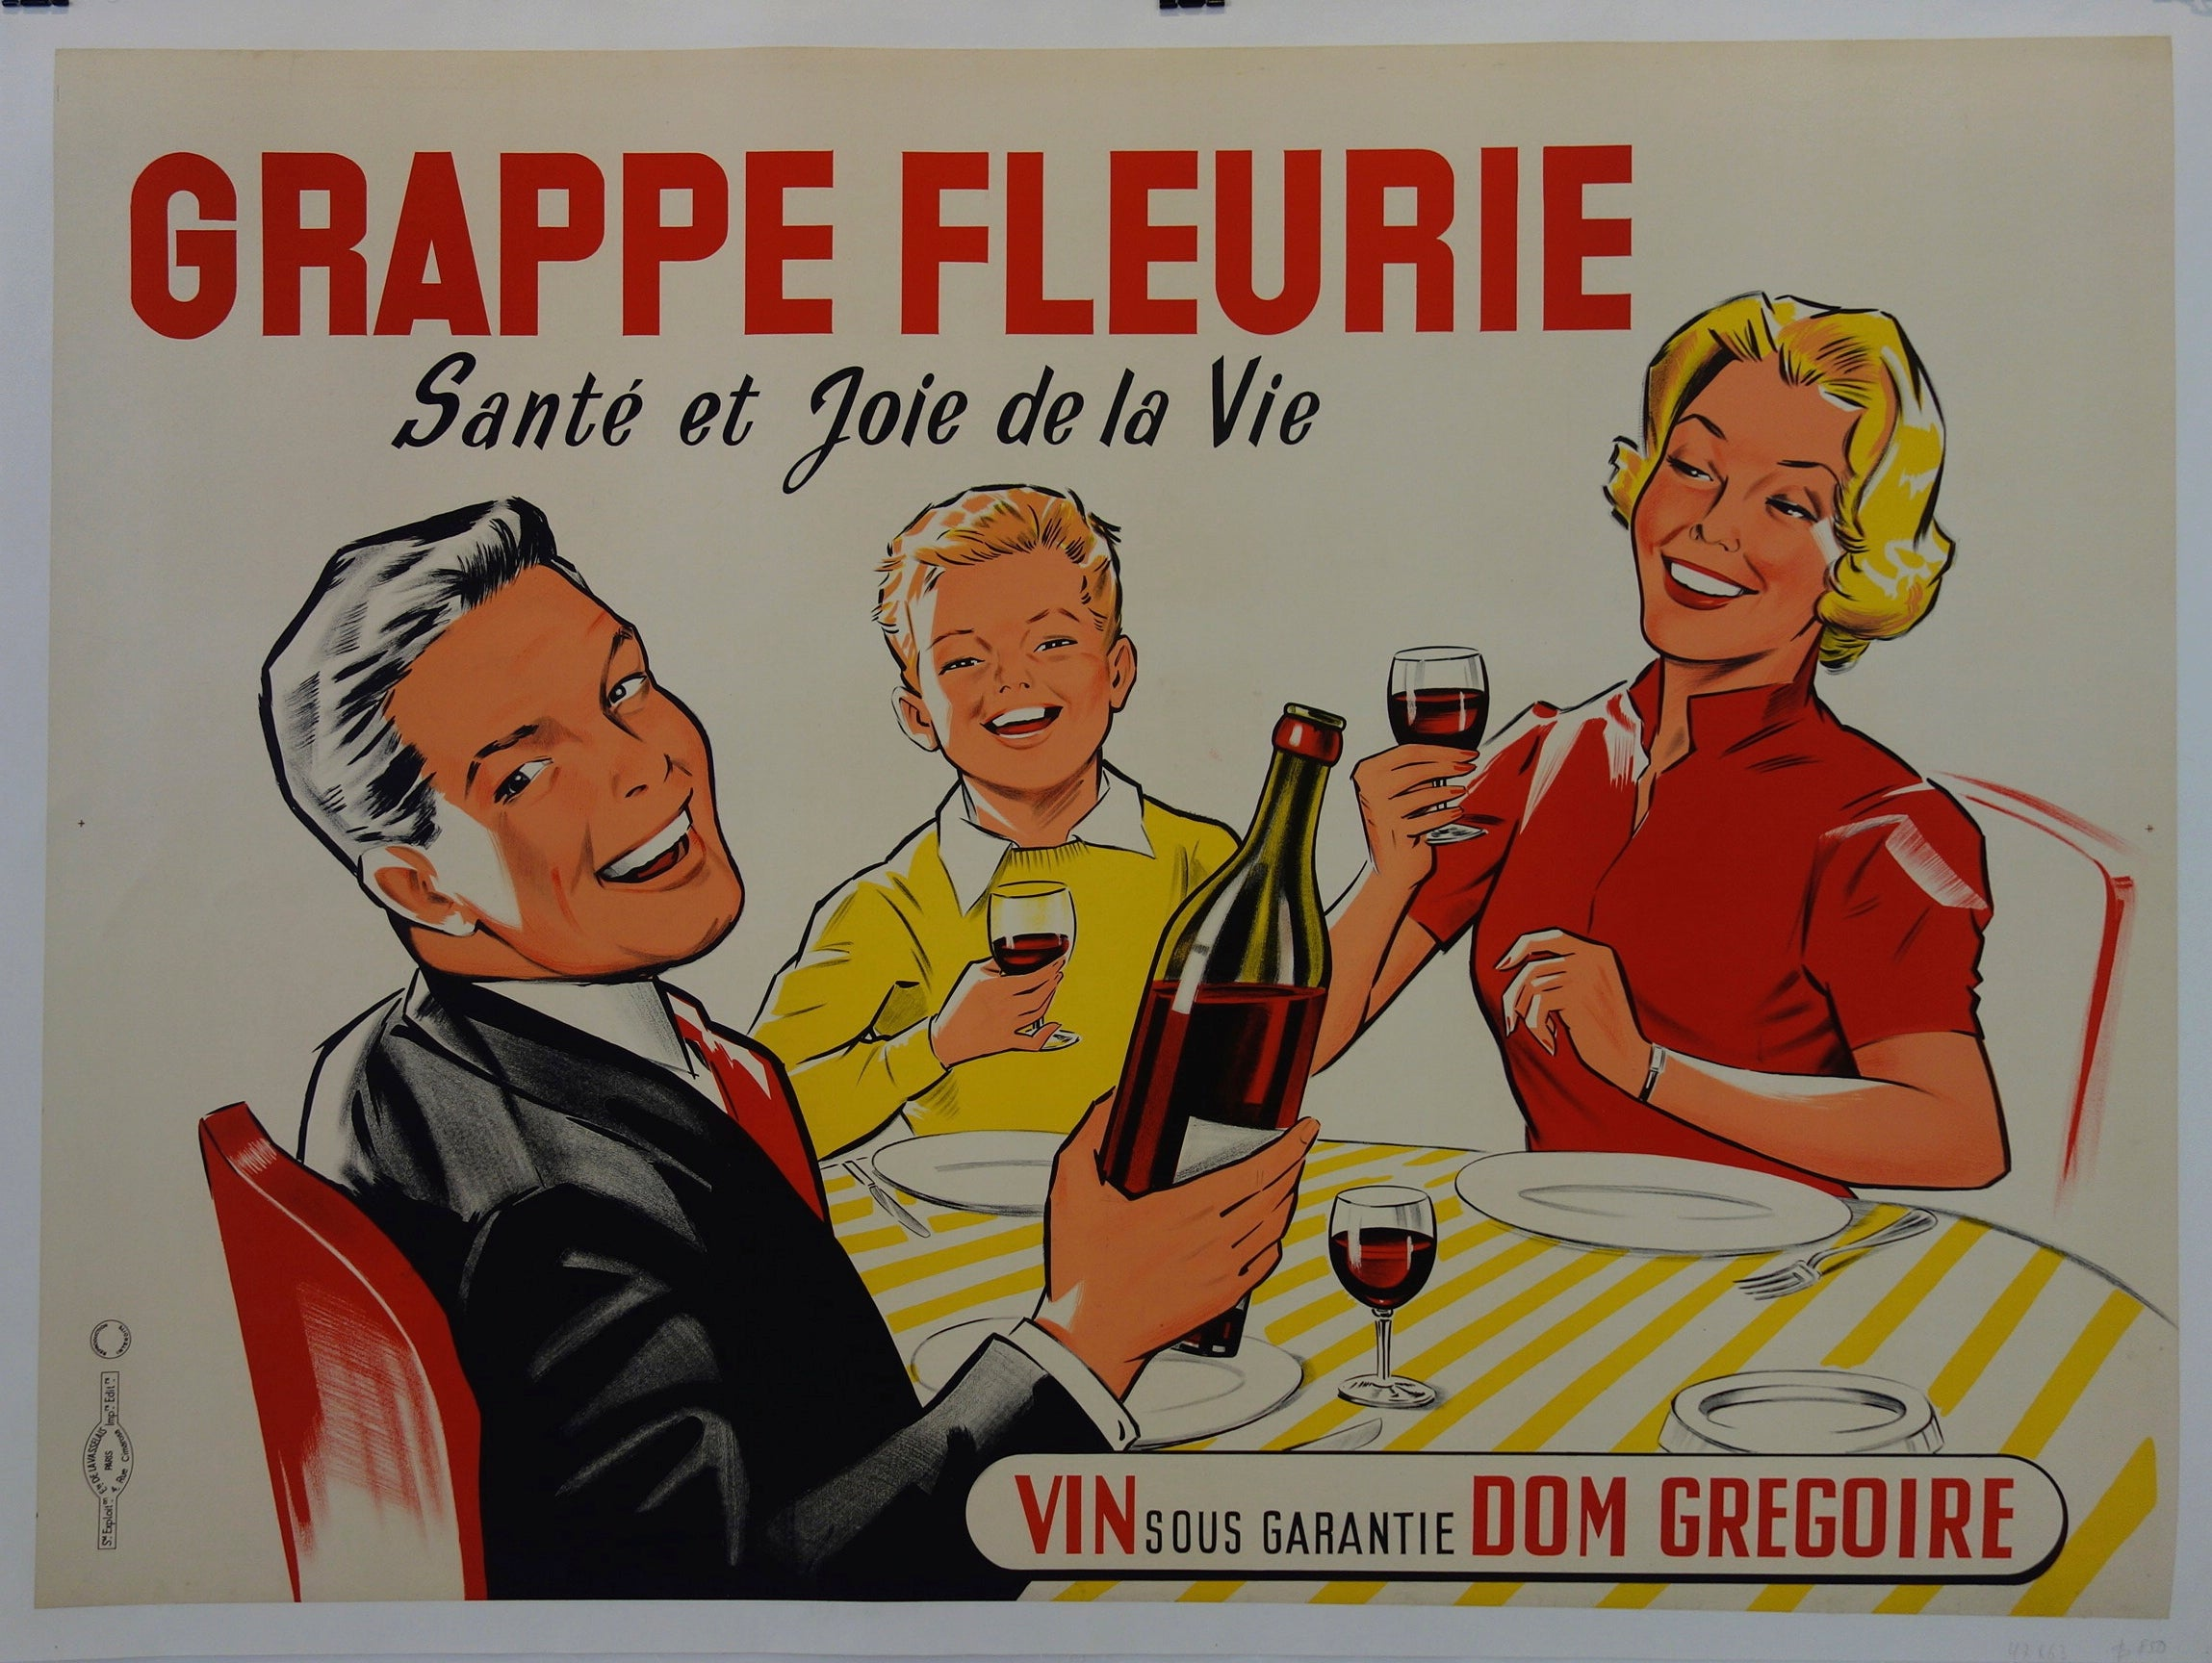 Grappe Fleurie